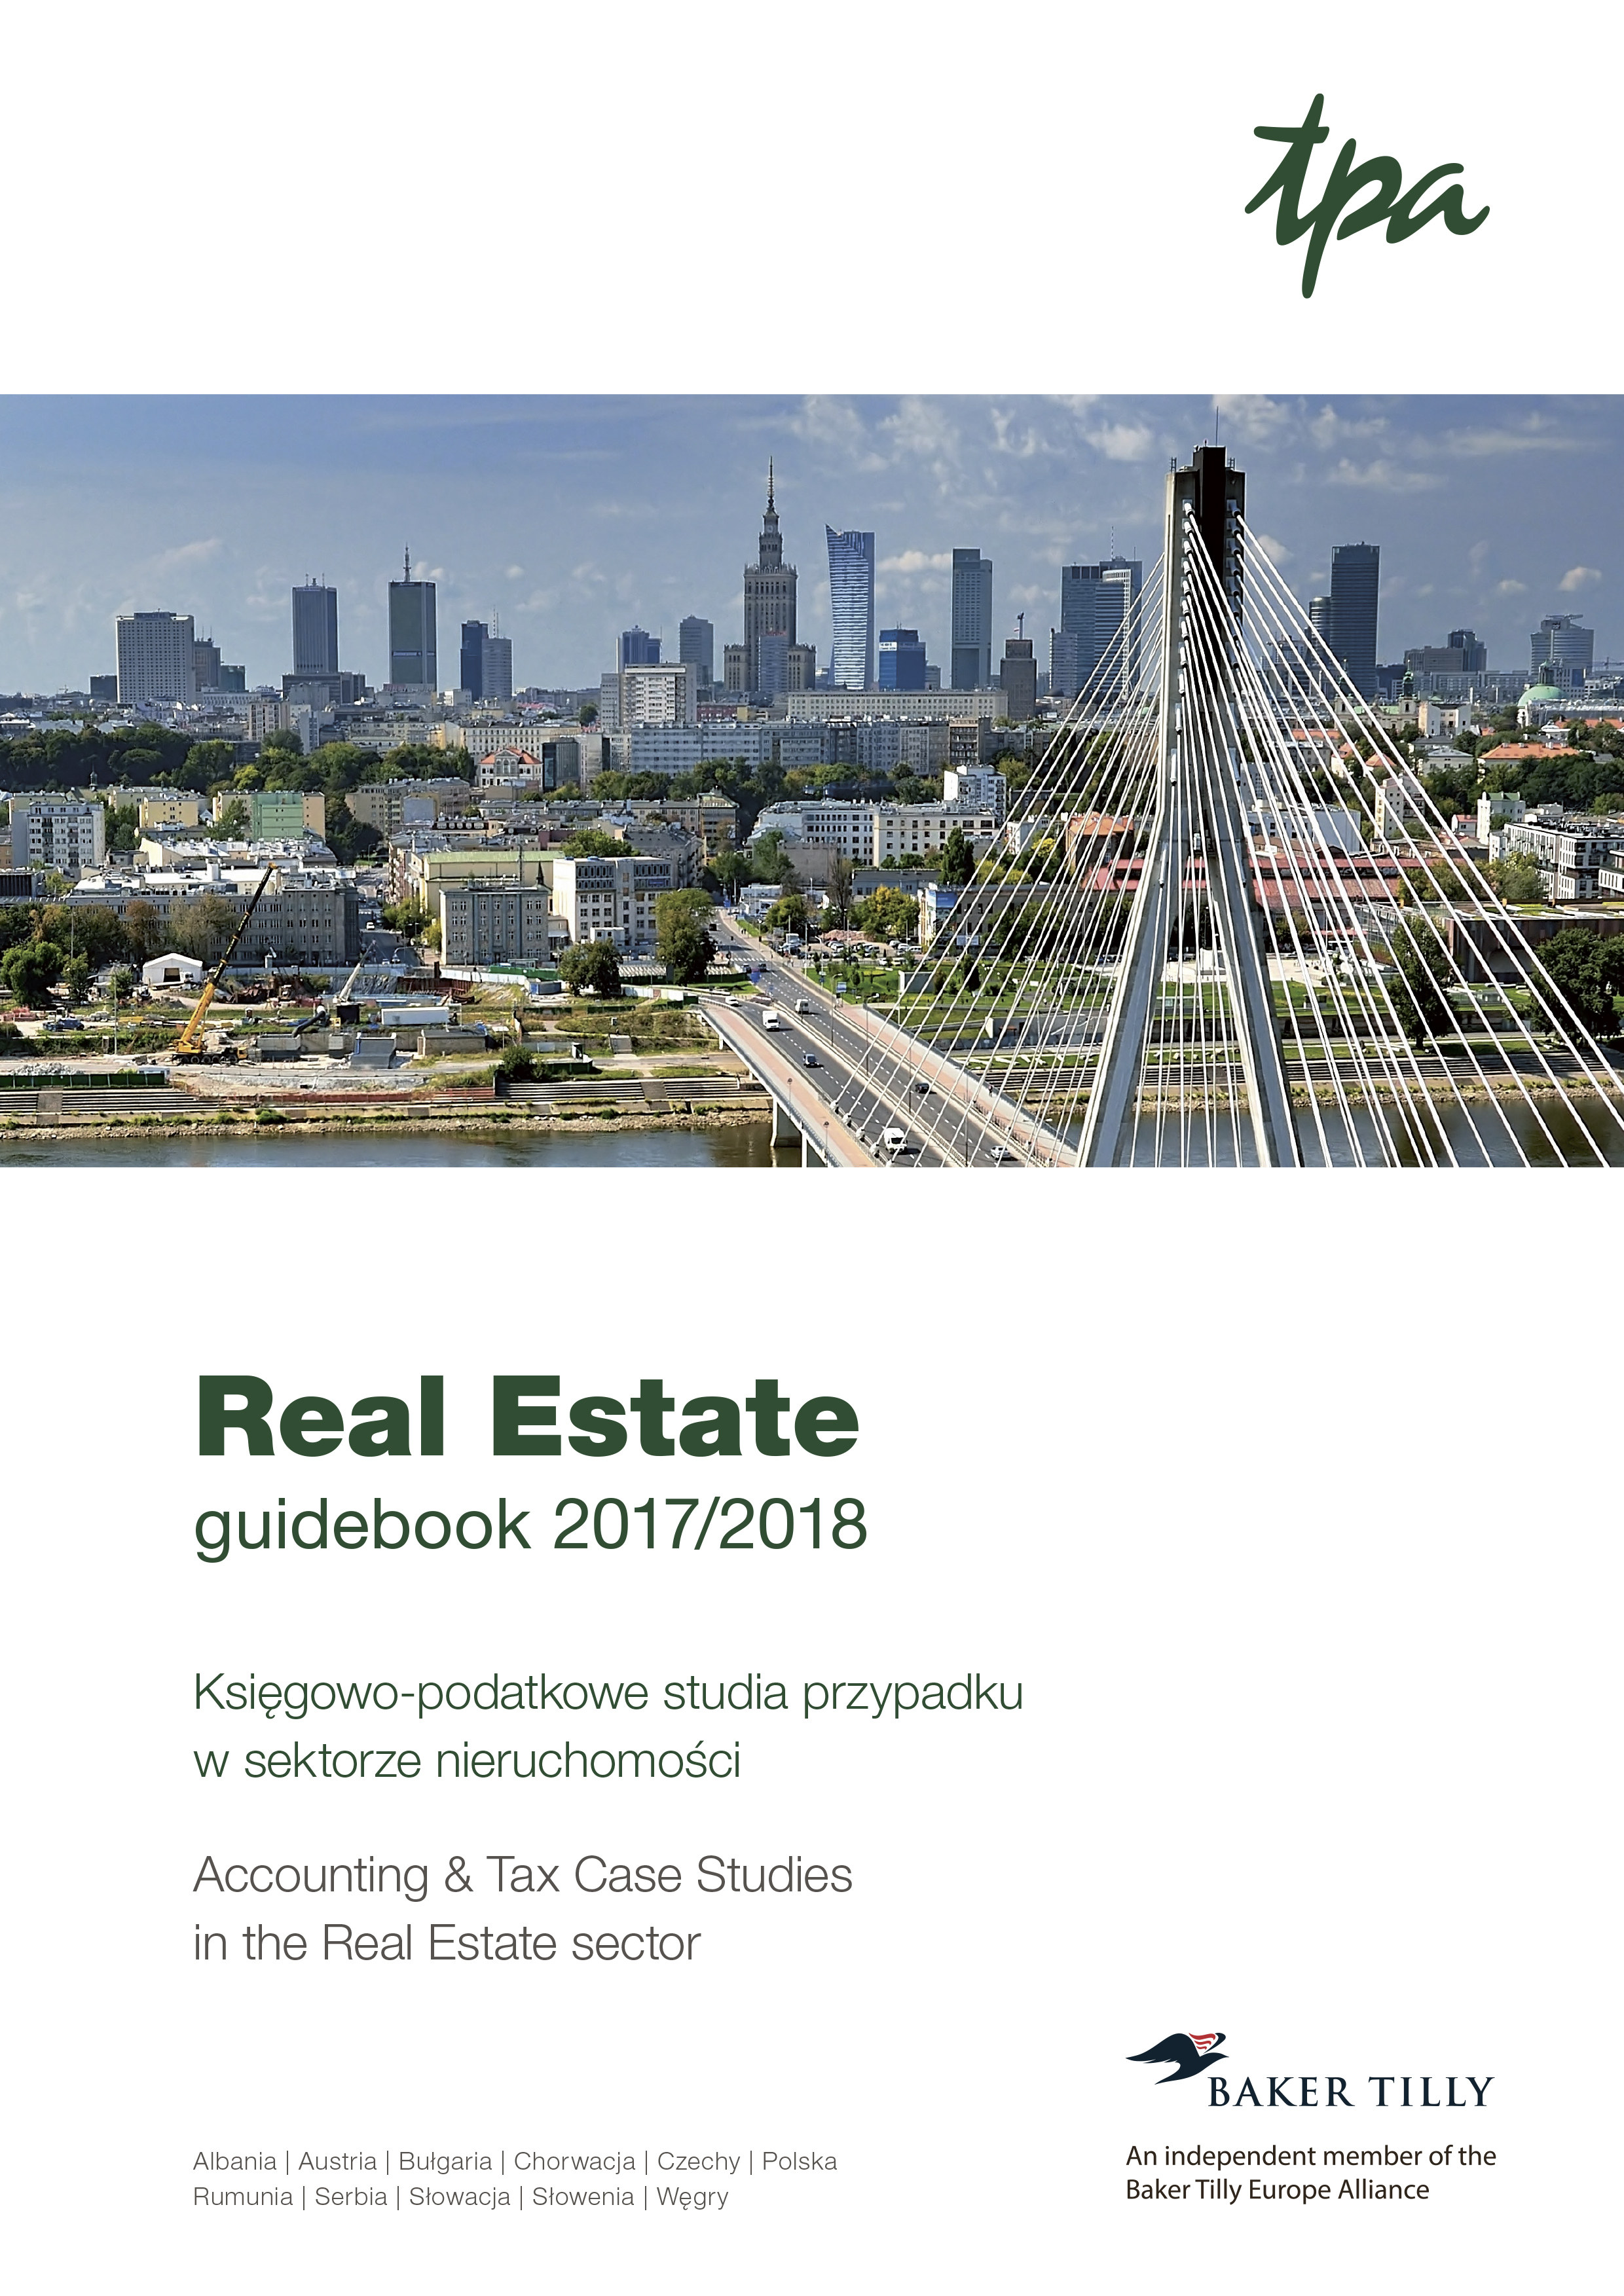 Real Estate Guidebook 2017/2018